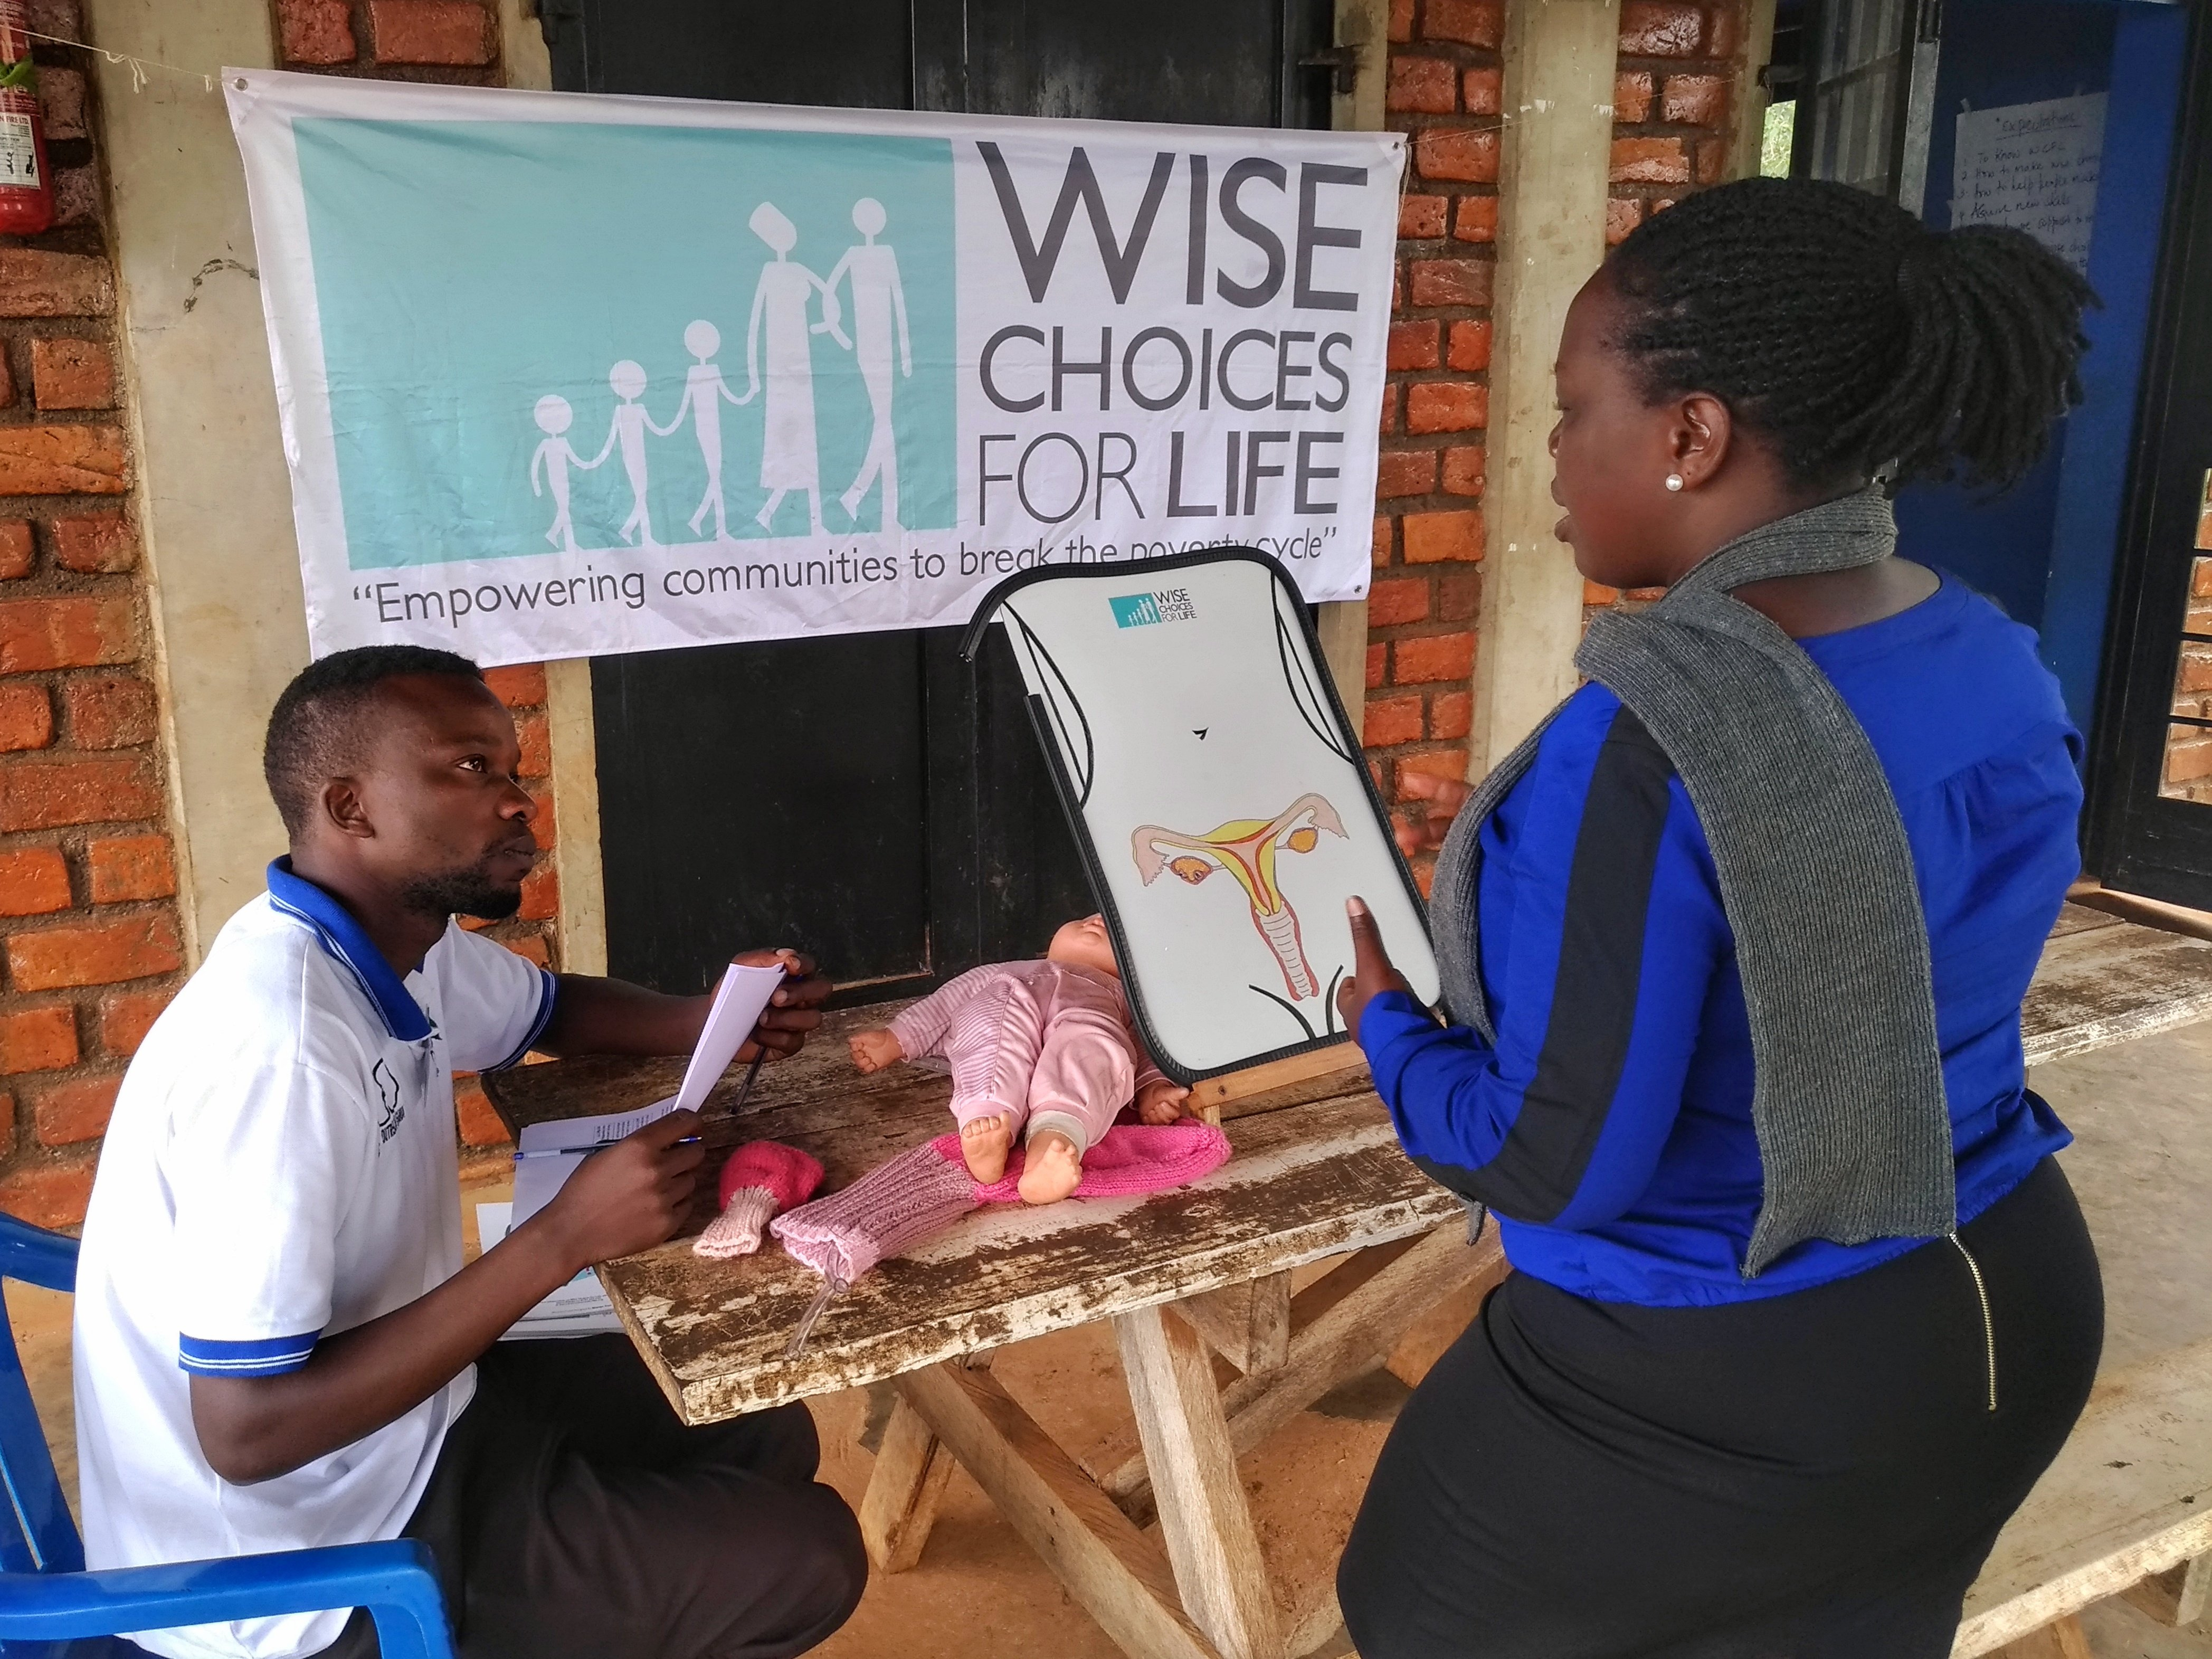 Penlope being tested in Wise Choices for Life